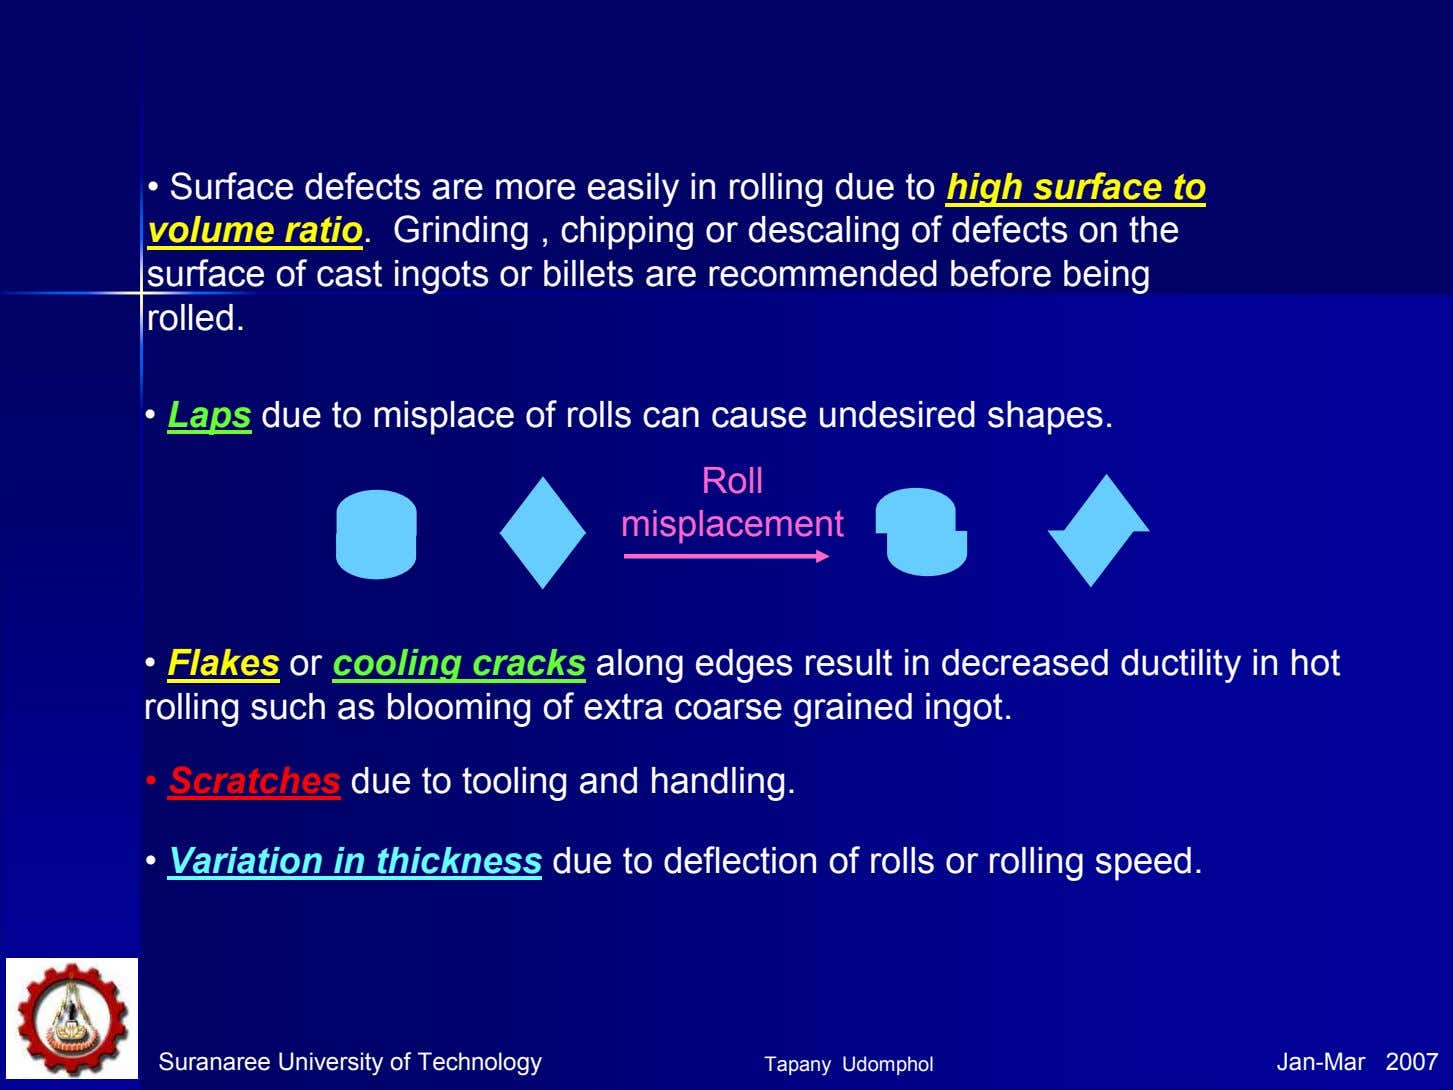 • Surface defects are more easily in rolling due to high surface to volume ratio.